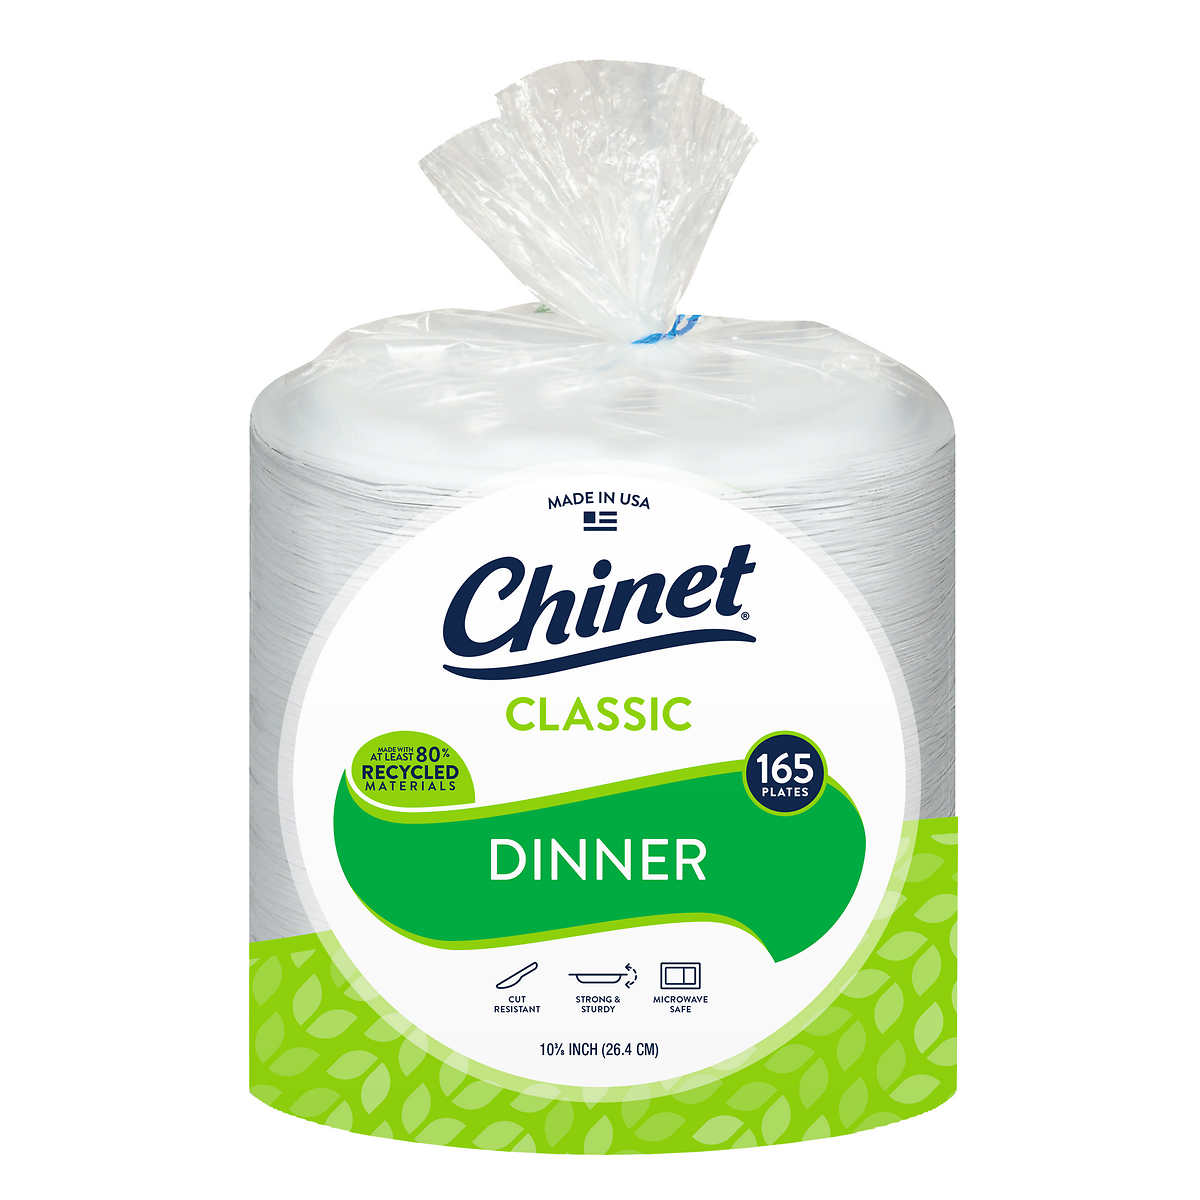 Chinet Dinner 10 38 In Paper Plate Classic White 165 Count